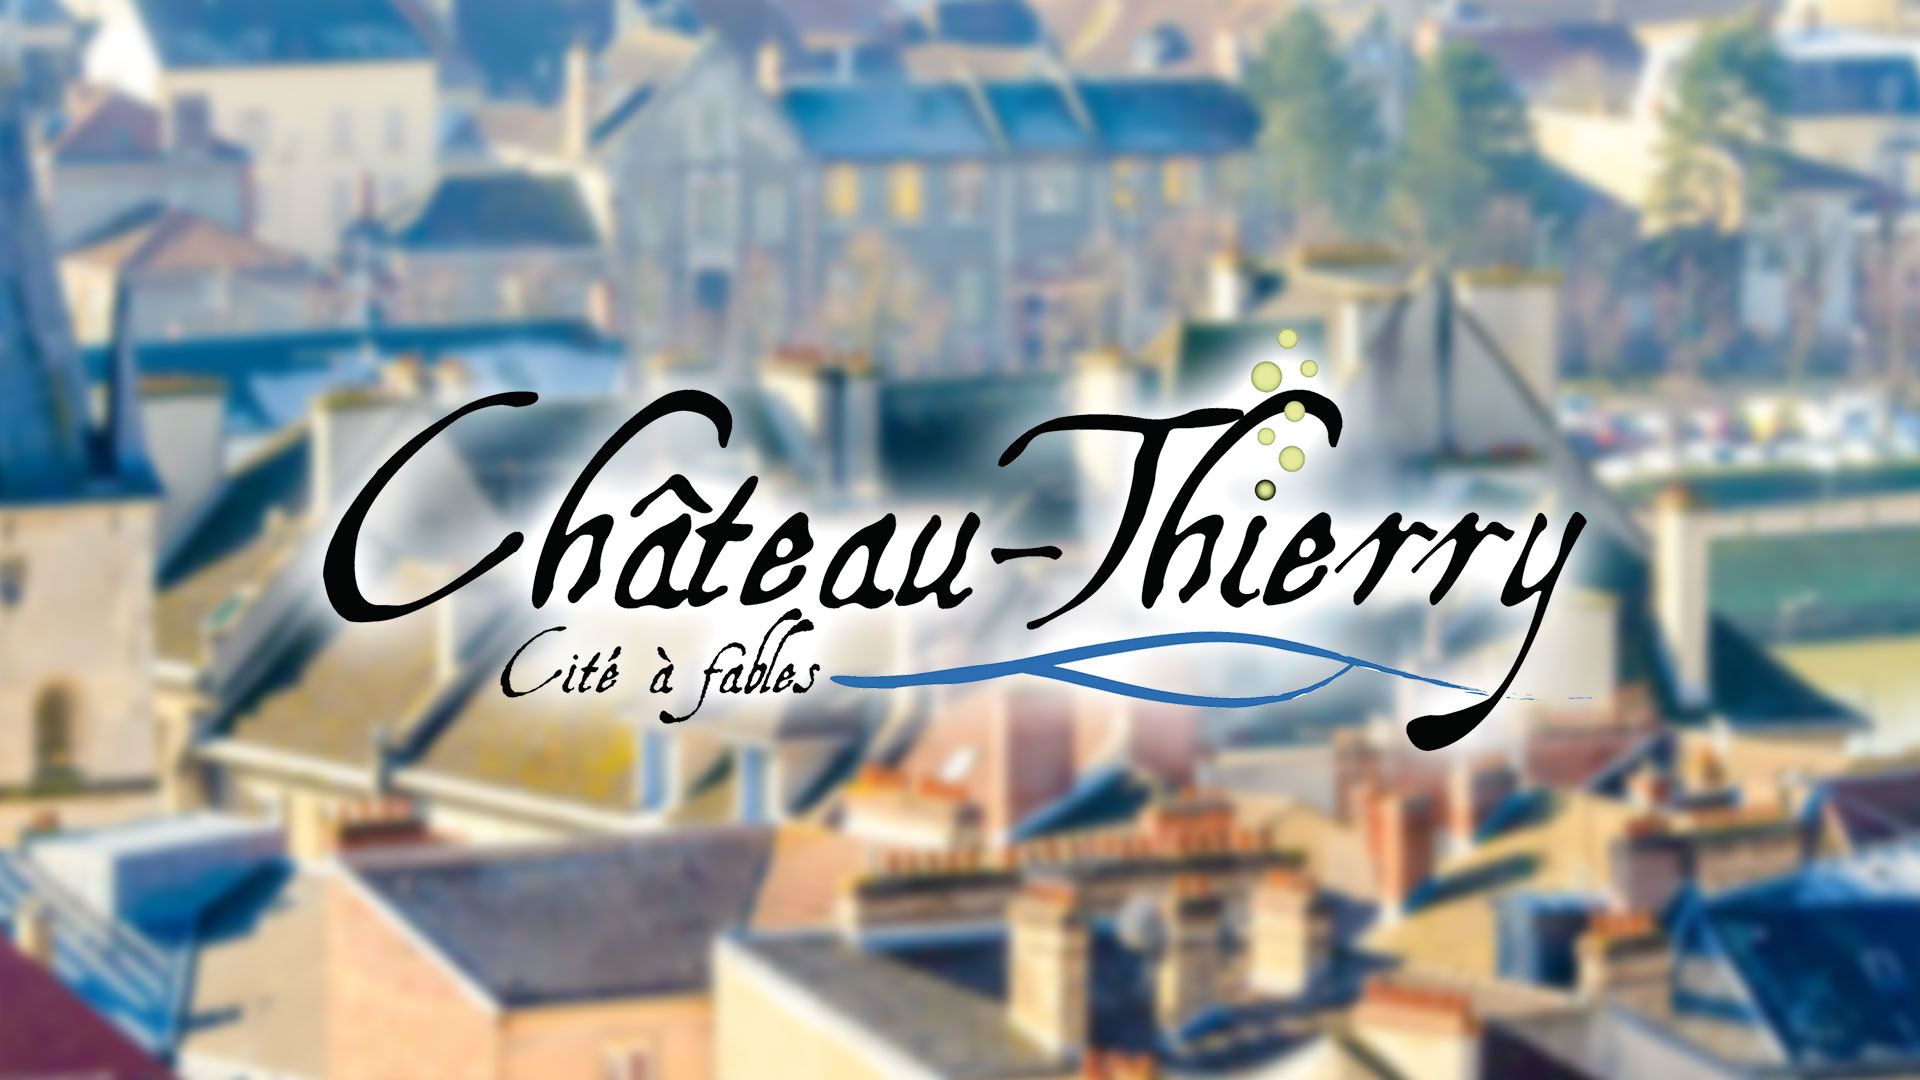 Chateau-Thierry - MGDIS